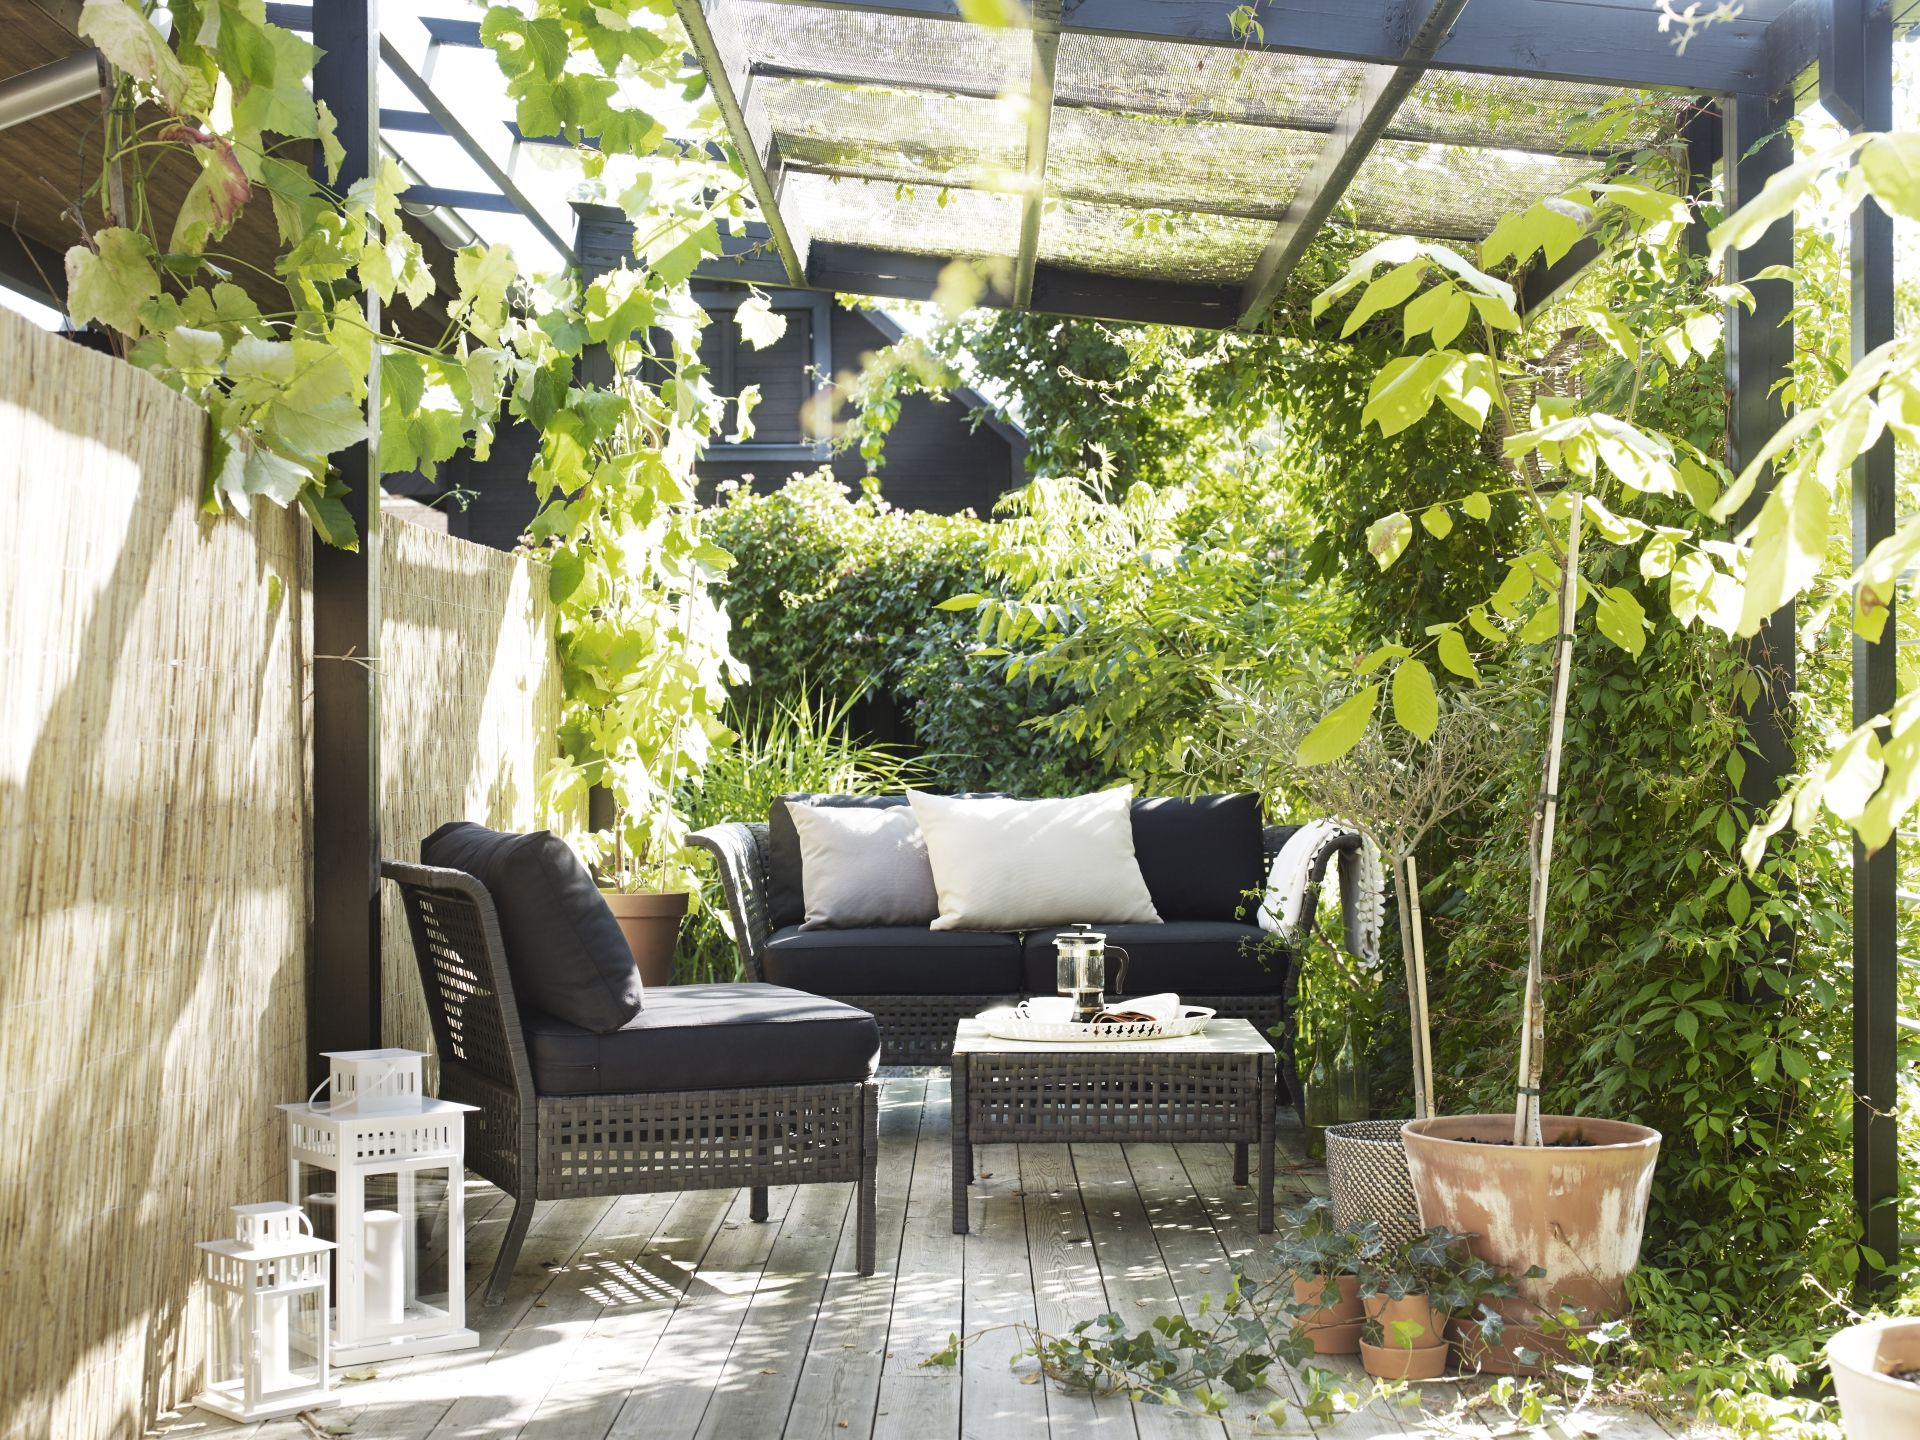 Balcony furniture ikea - Find This Pin And More On Exterior 2016 Ikea Portugal